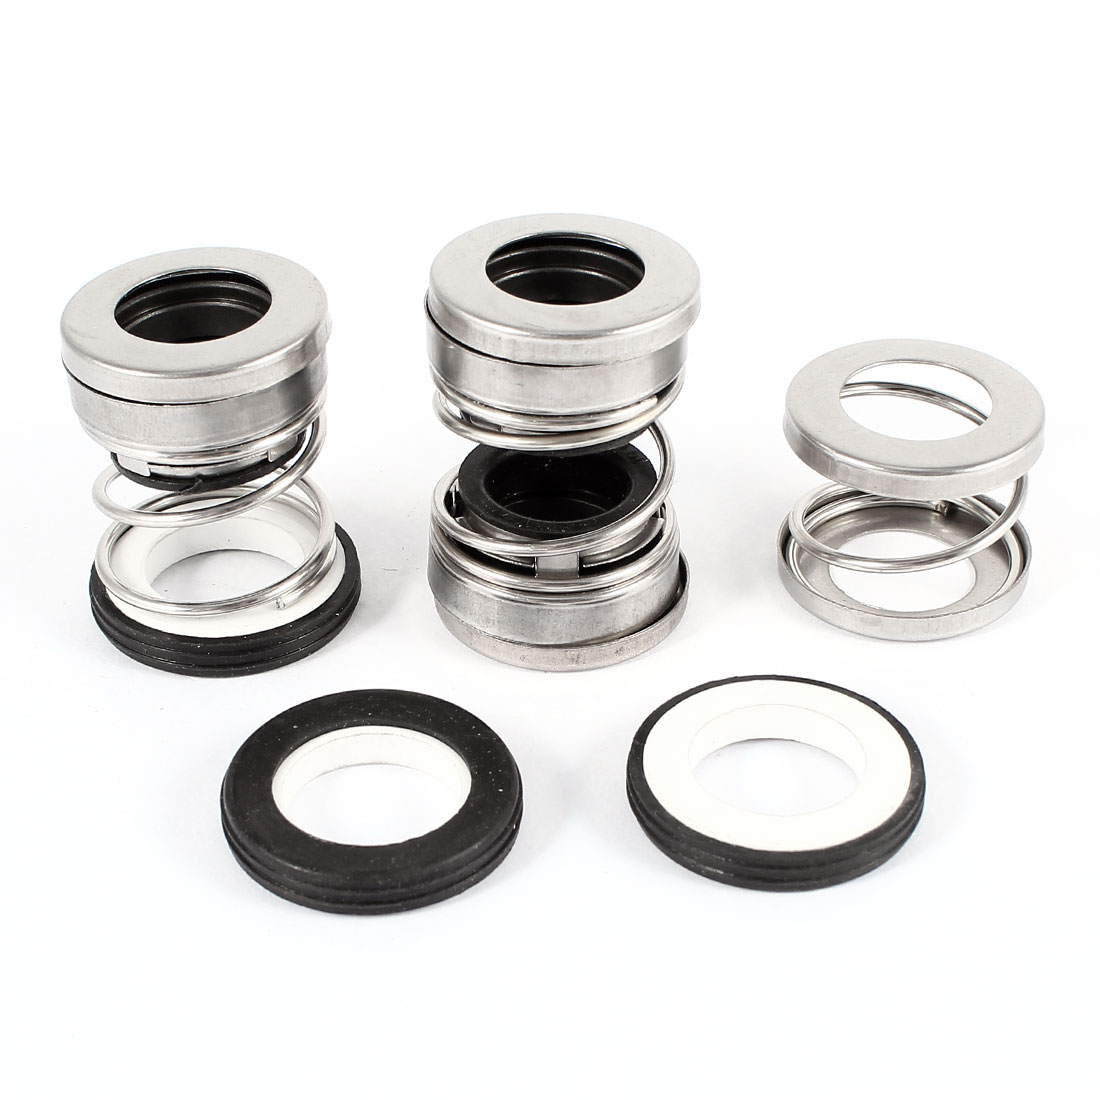 3pcs Ceramic Ring Single Coil Spring Black Rubber Bellows Water Pumps Mechanical Sealing 14mm Internal Dia